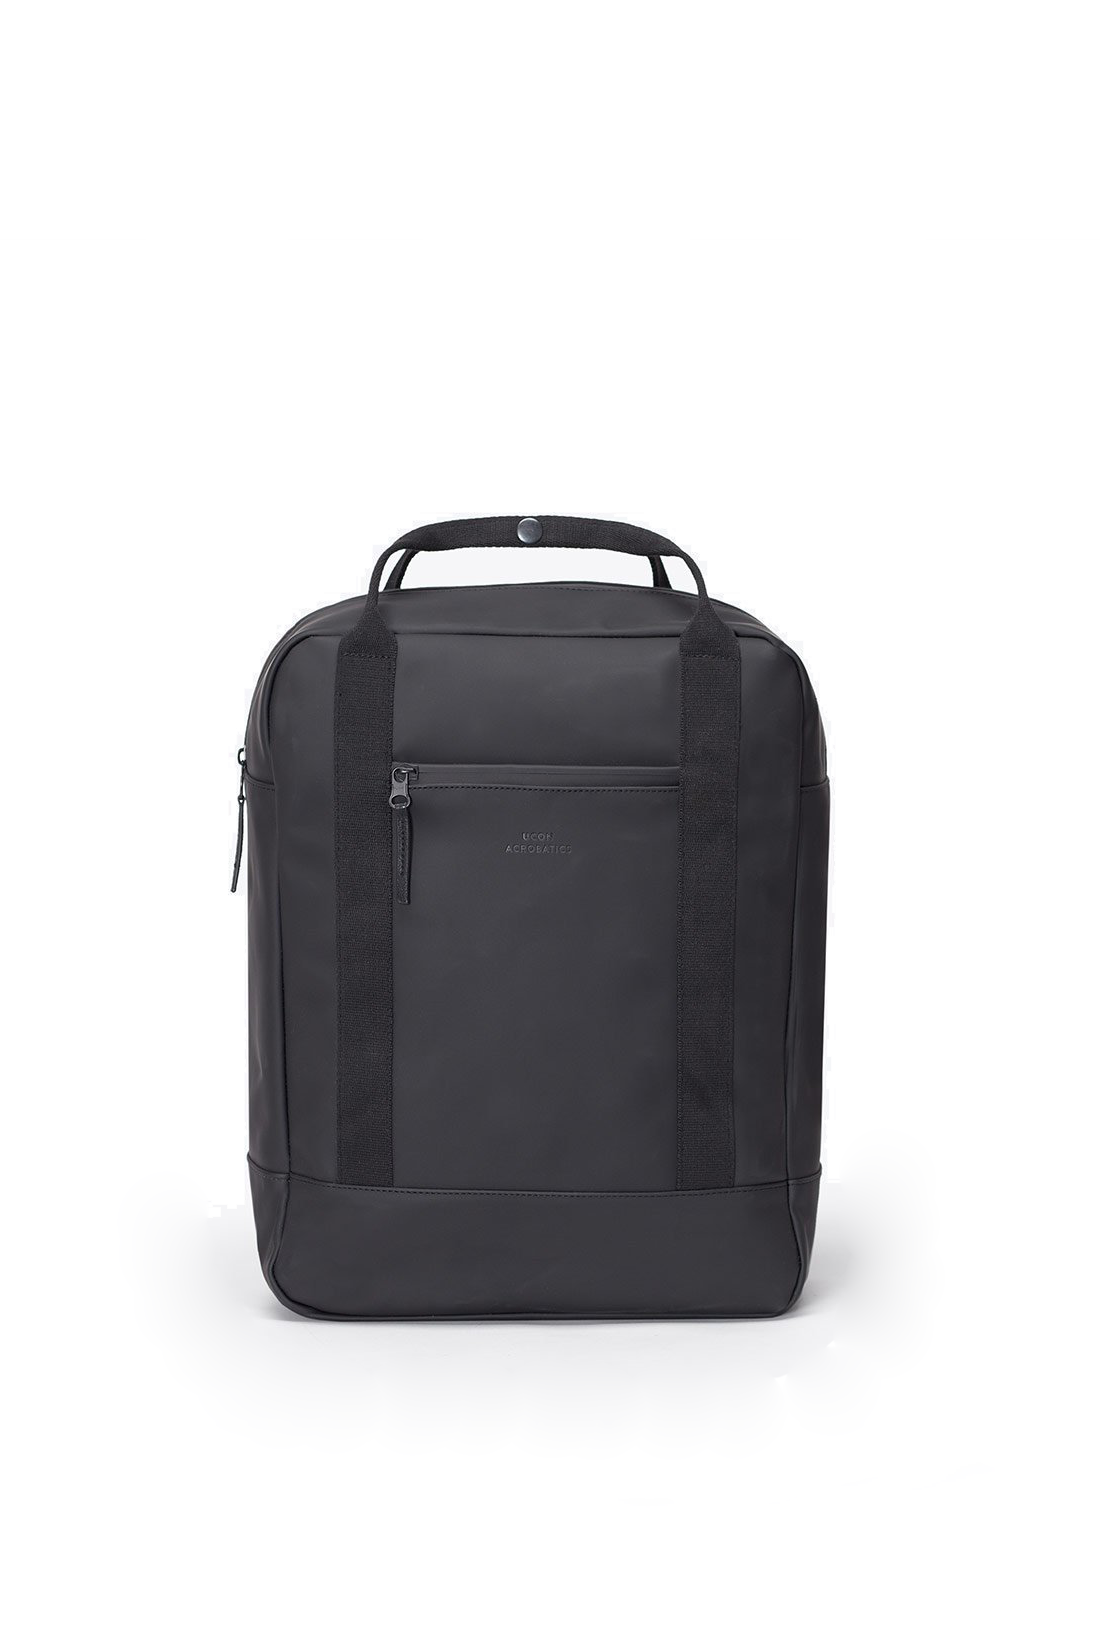 Ison Backpack in Lotus Black - Philistine